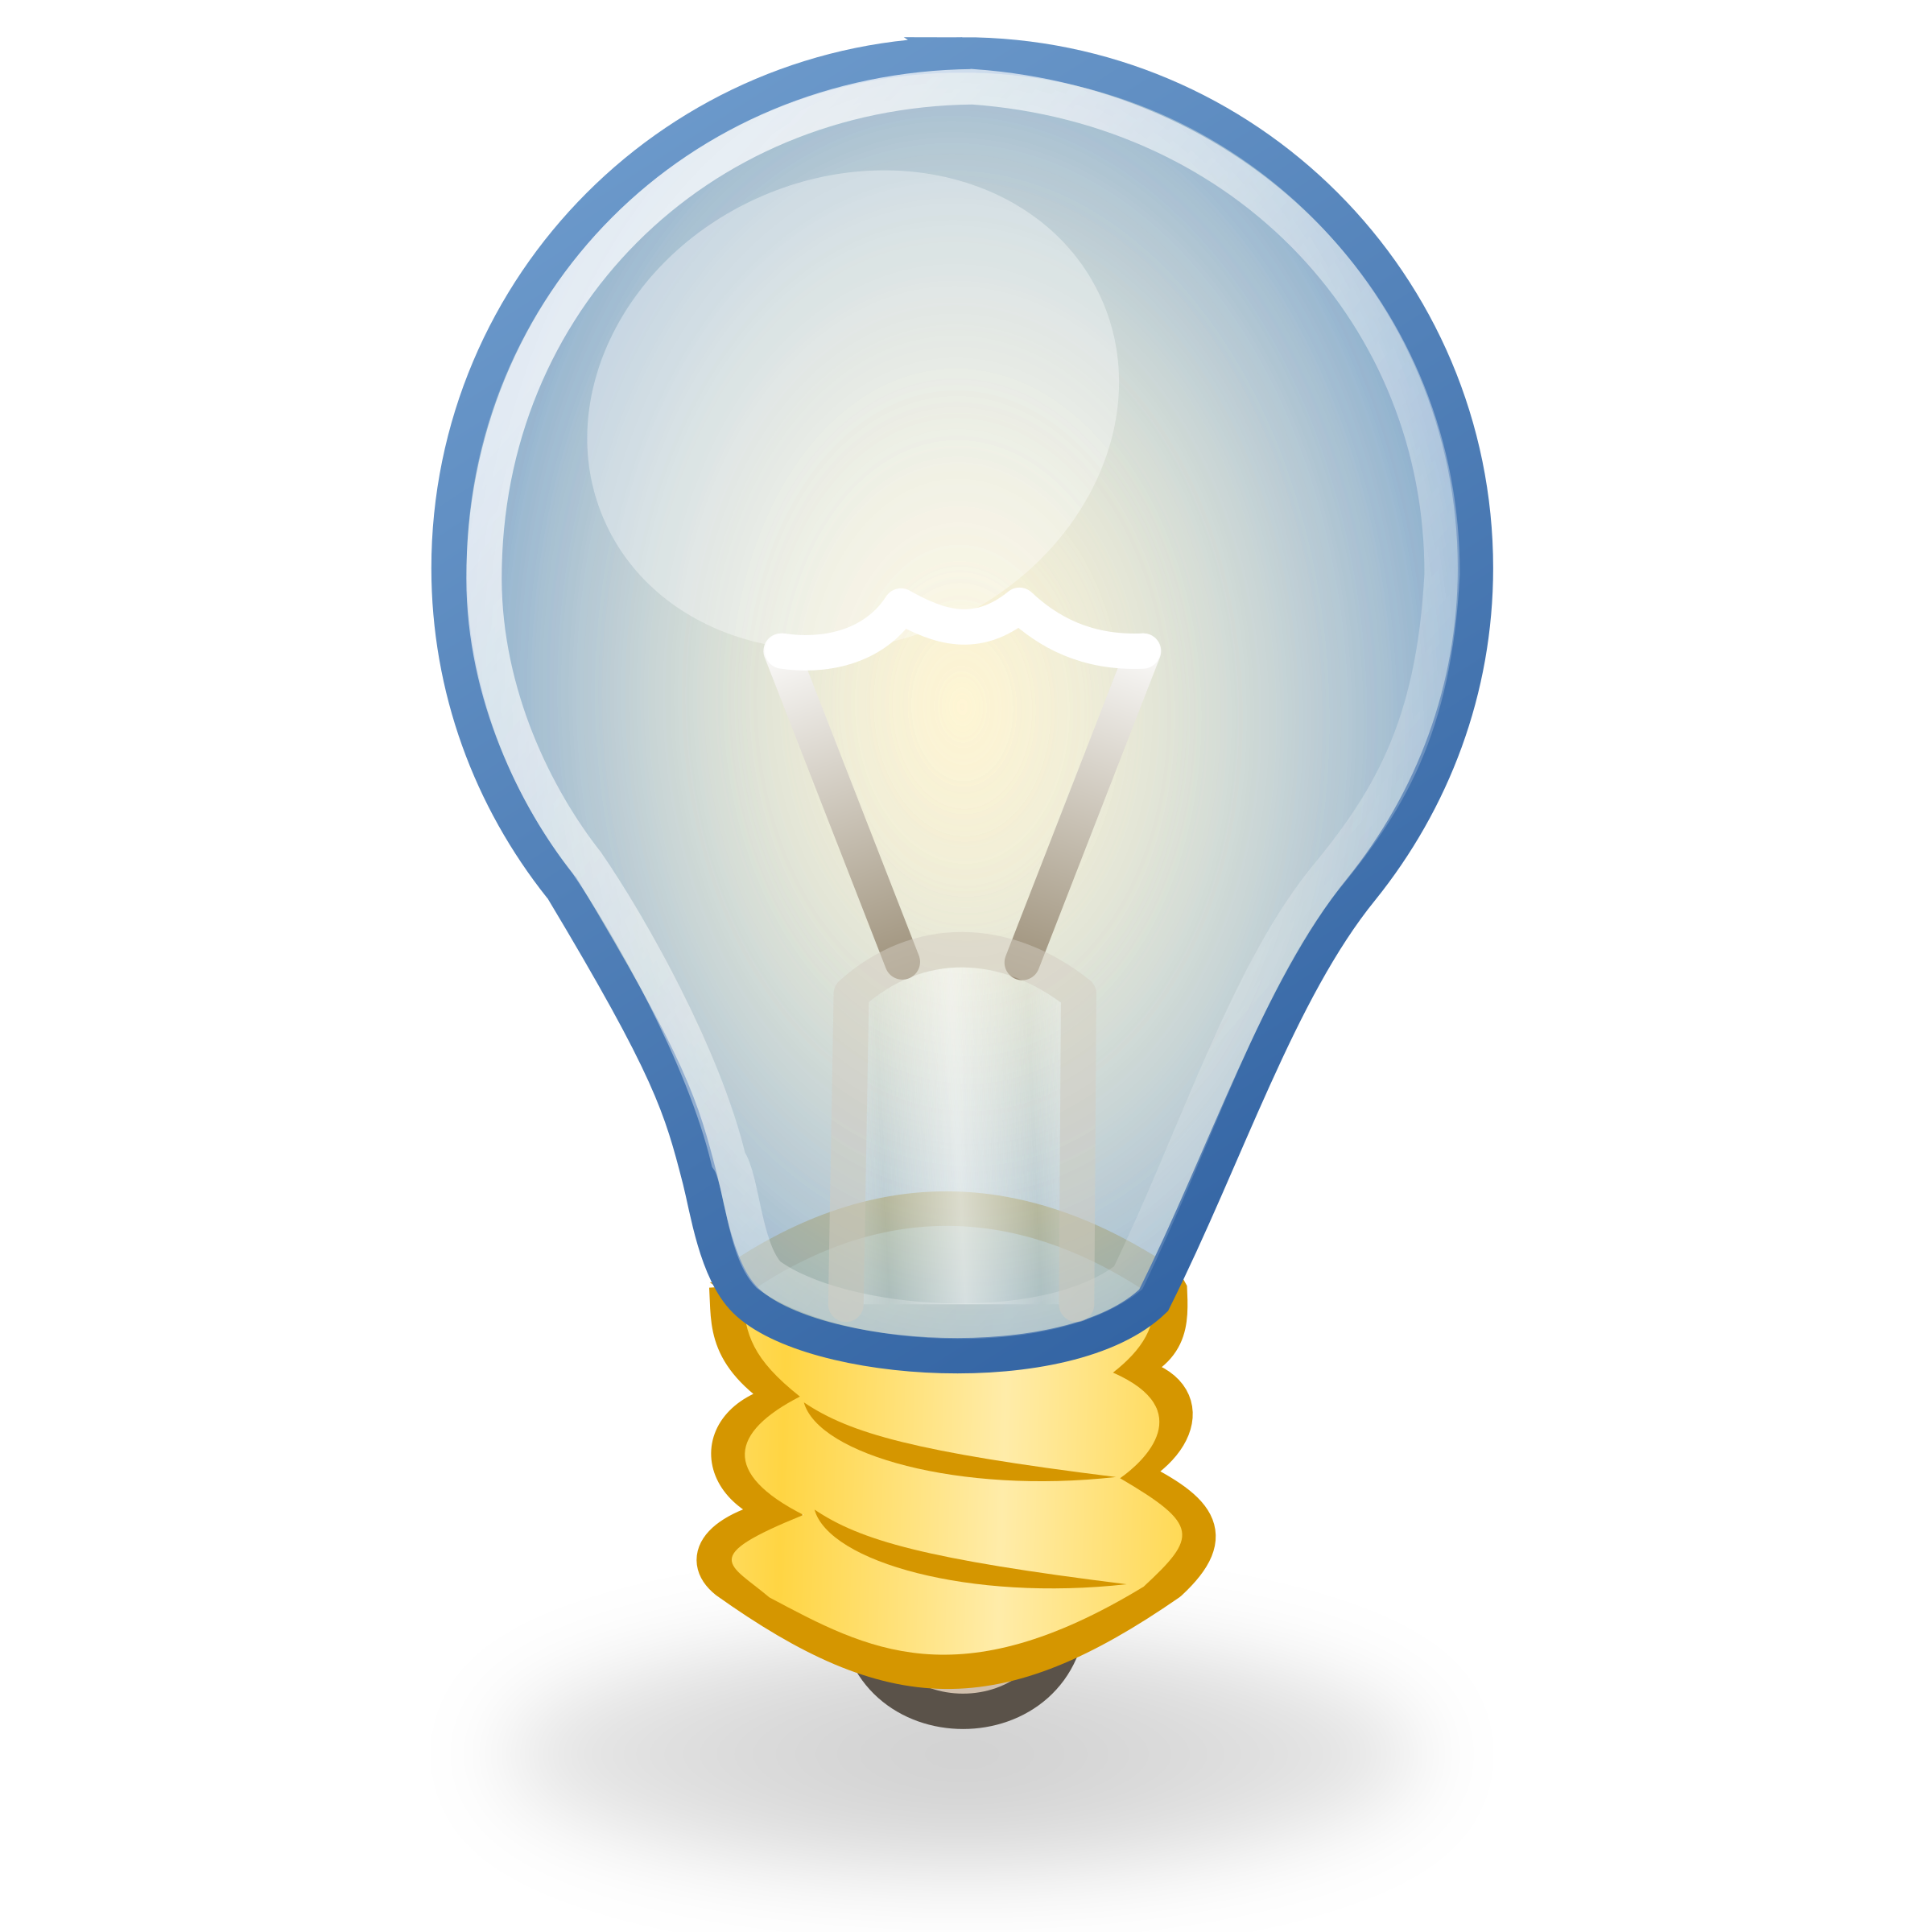 Thoughts clipart buld. Light bulb icon big